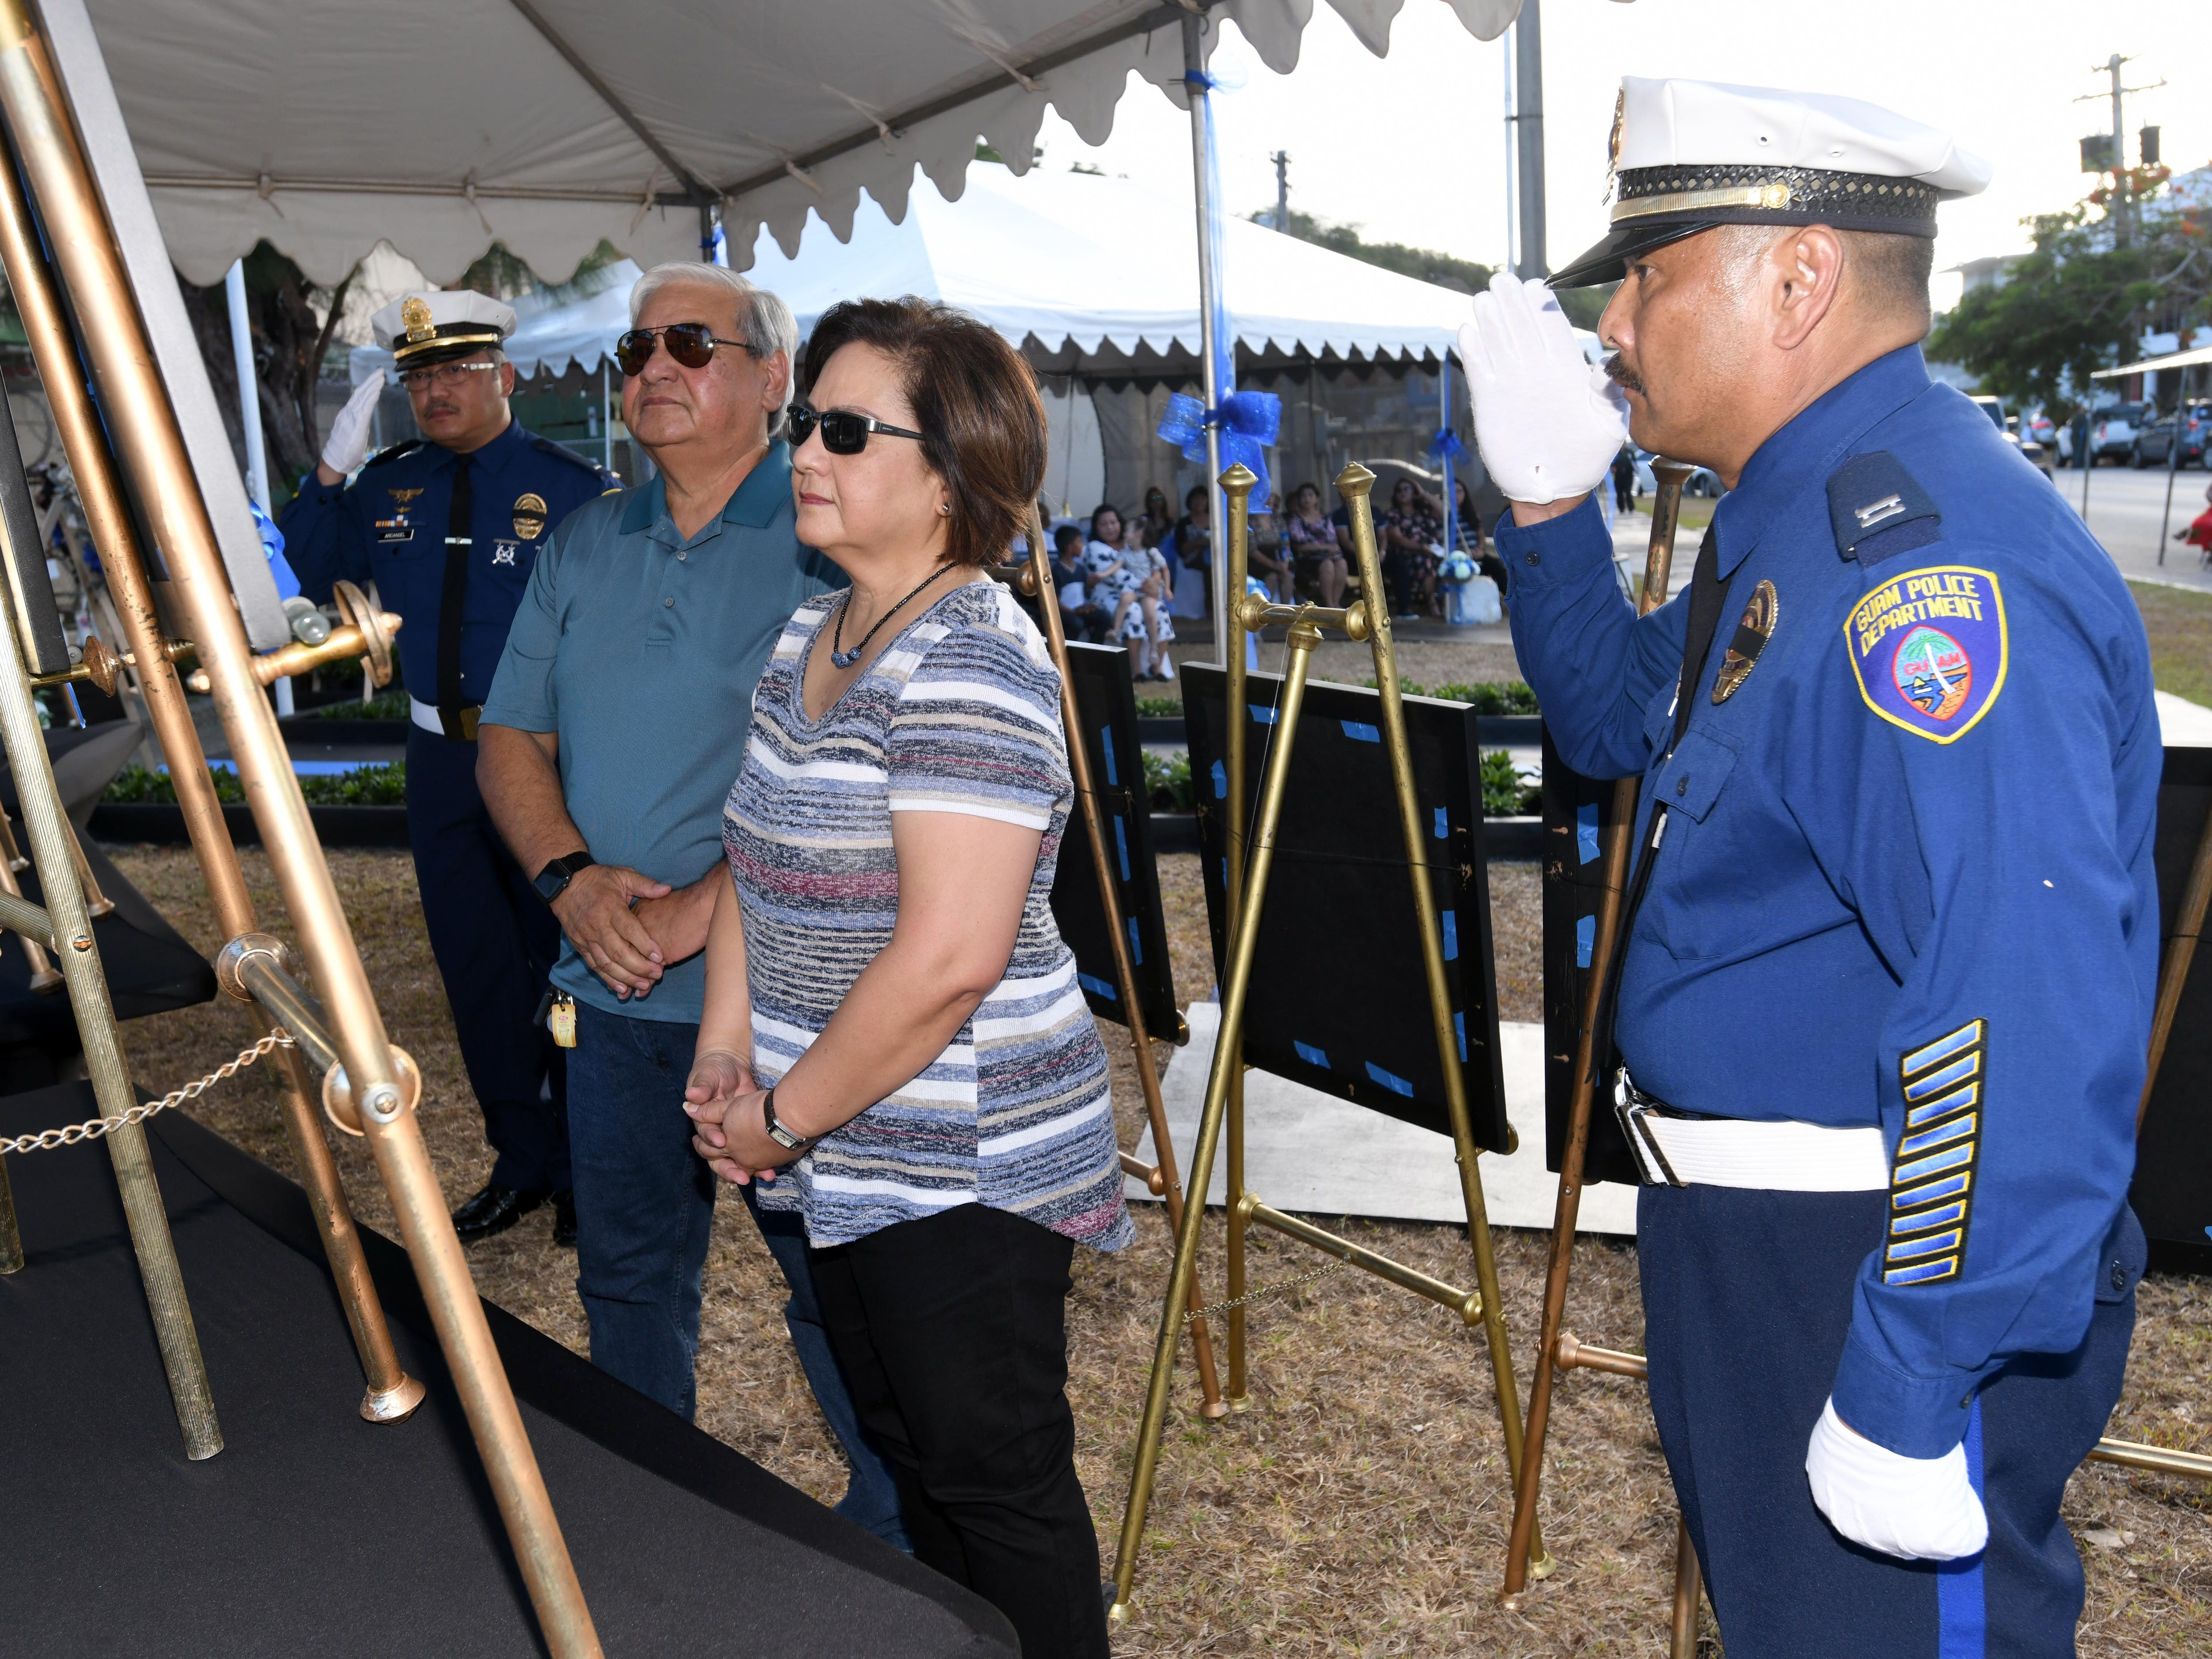 The service of Police Officer Francisco Taitague is remembered during the Peace Officers' Memorial Service and Wreath Laying Ceremony held at the Guam Police Department's Badge Memorial Park in Hagåtña on Wednesday, May 15, 2019.